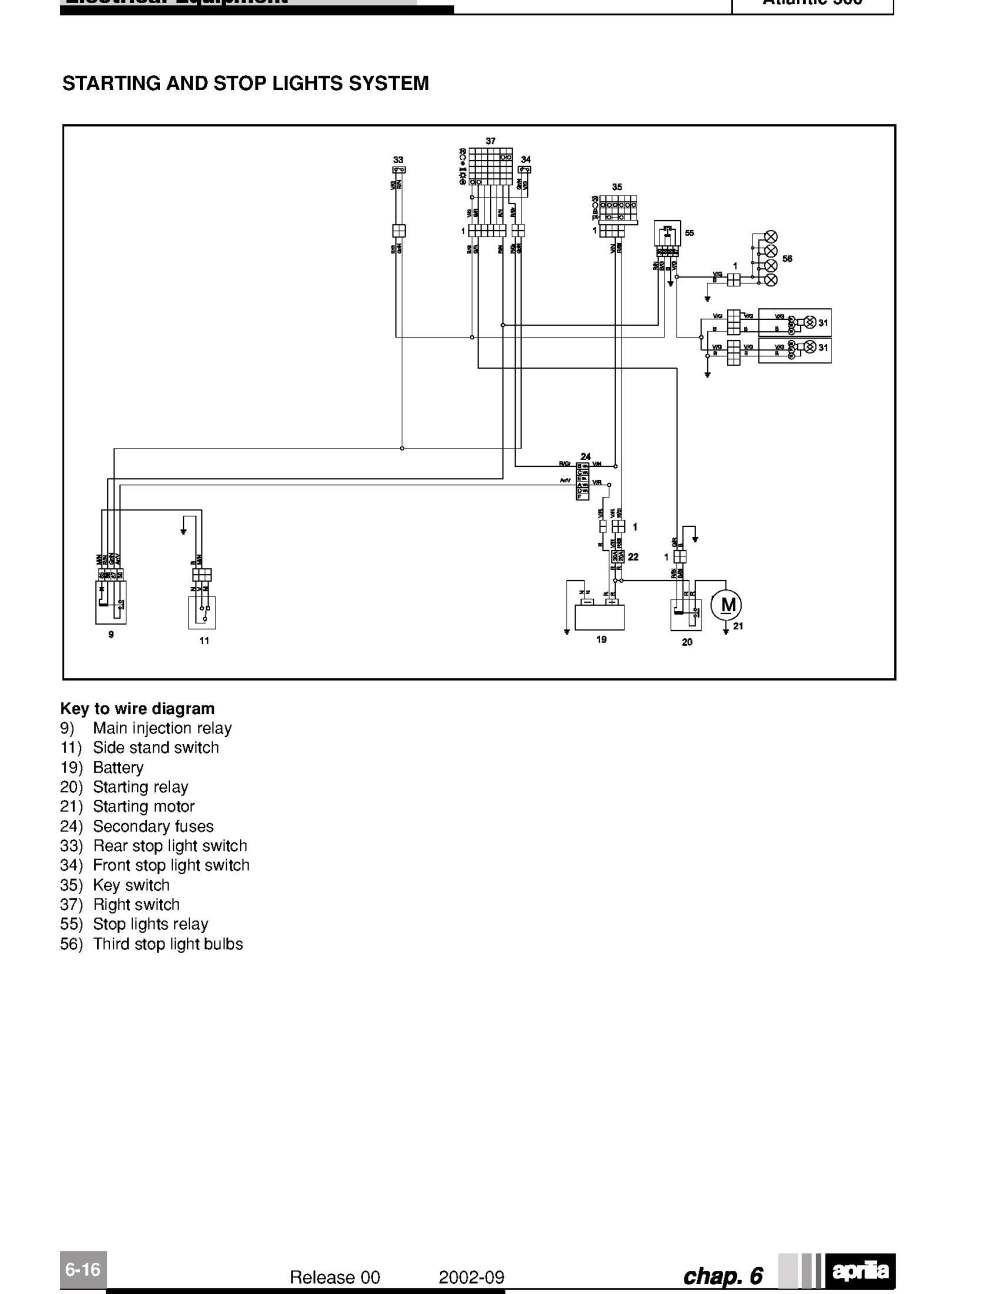 medium resolution of  rewiring the relevant wires to a non security alarm wiring setup for starter button kill switch injection relay etc here s the diagram from my 03